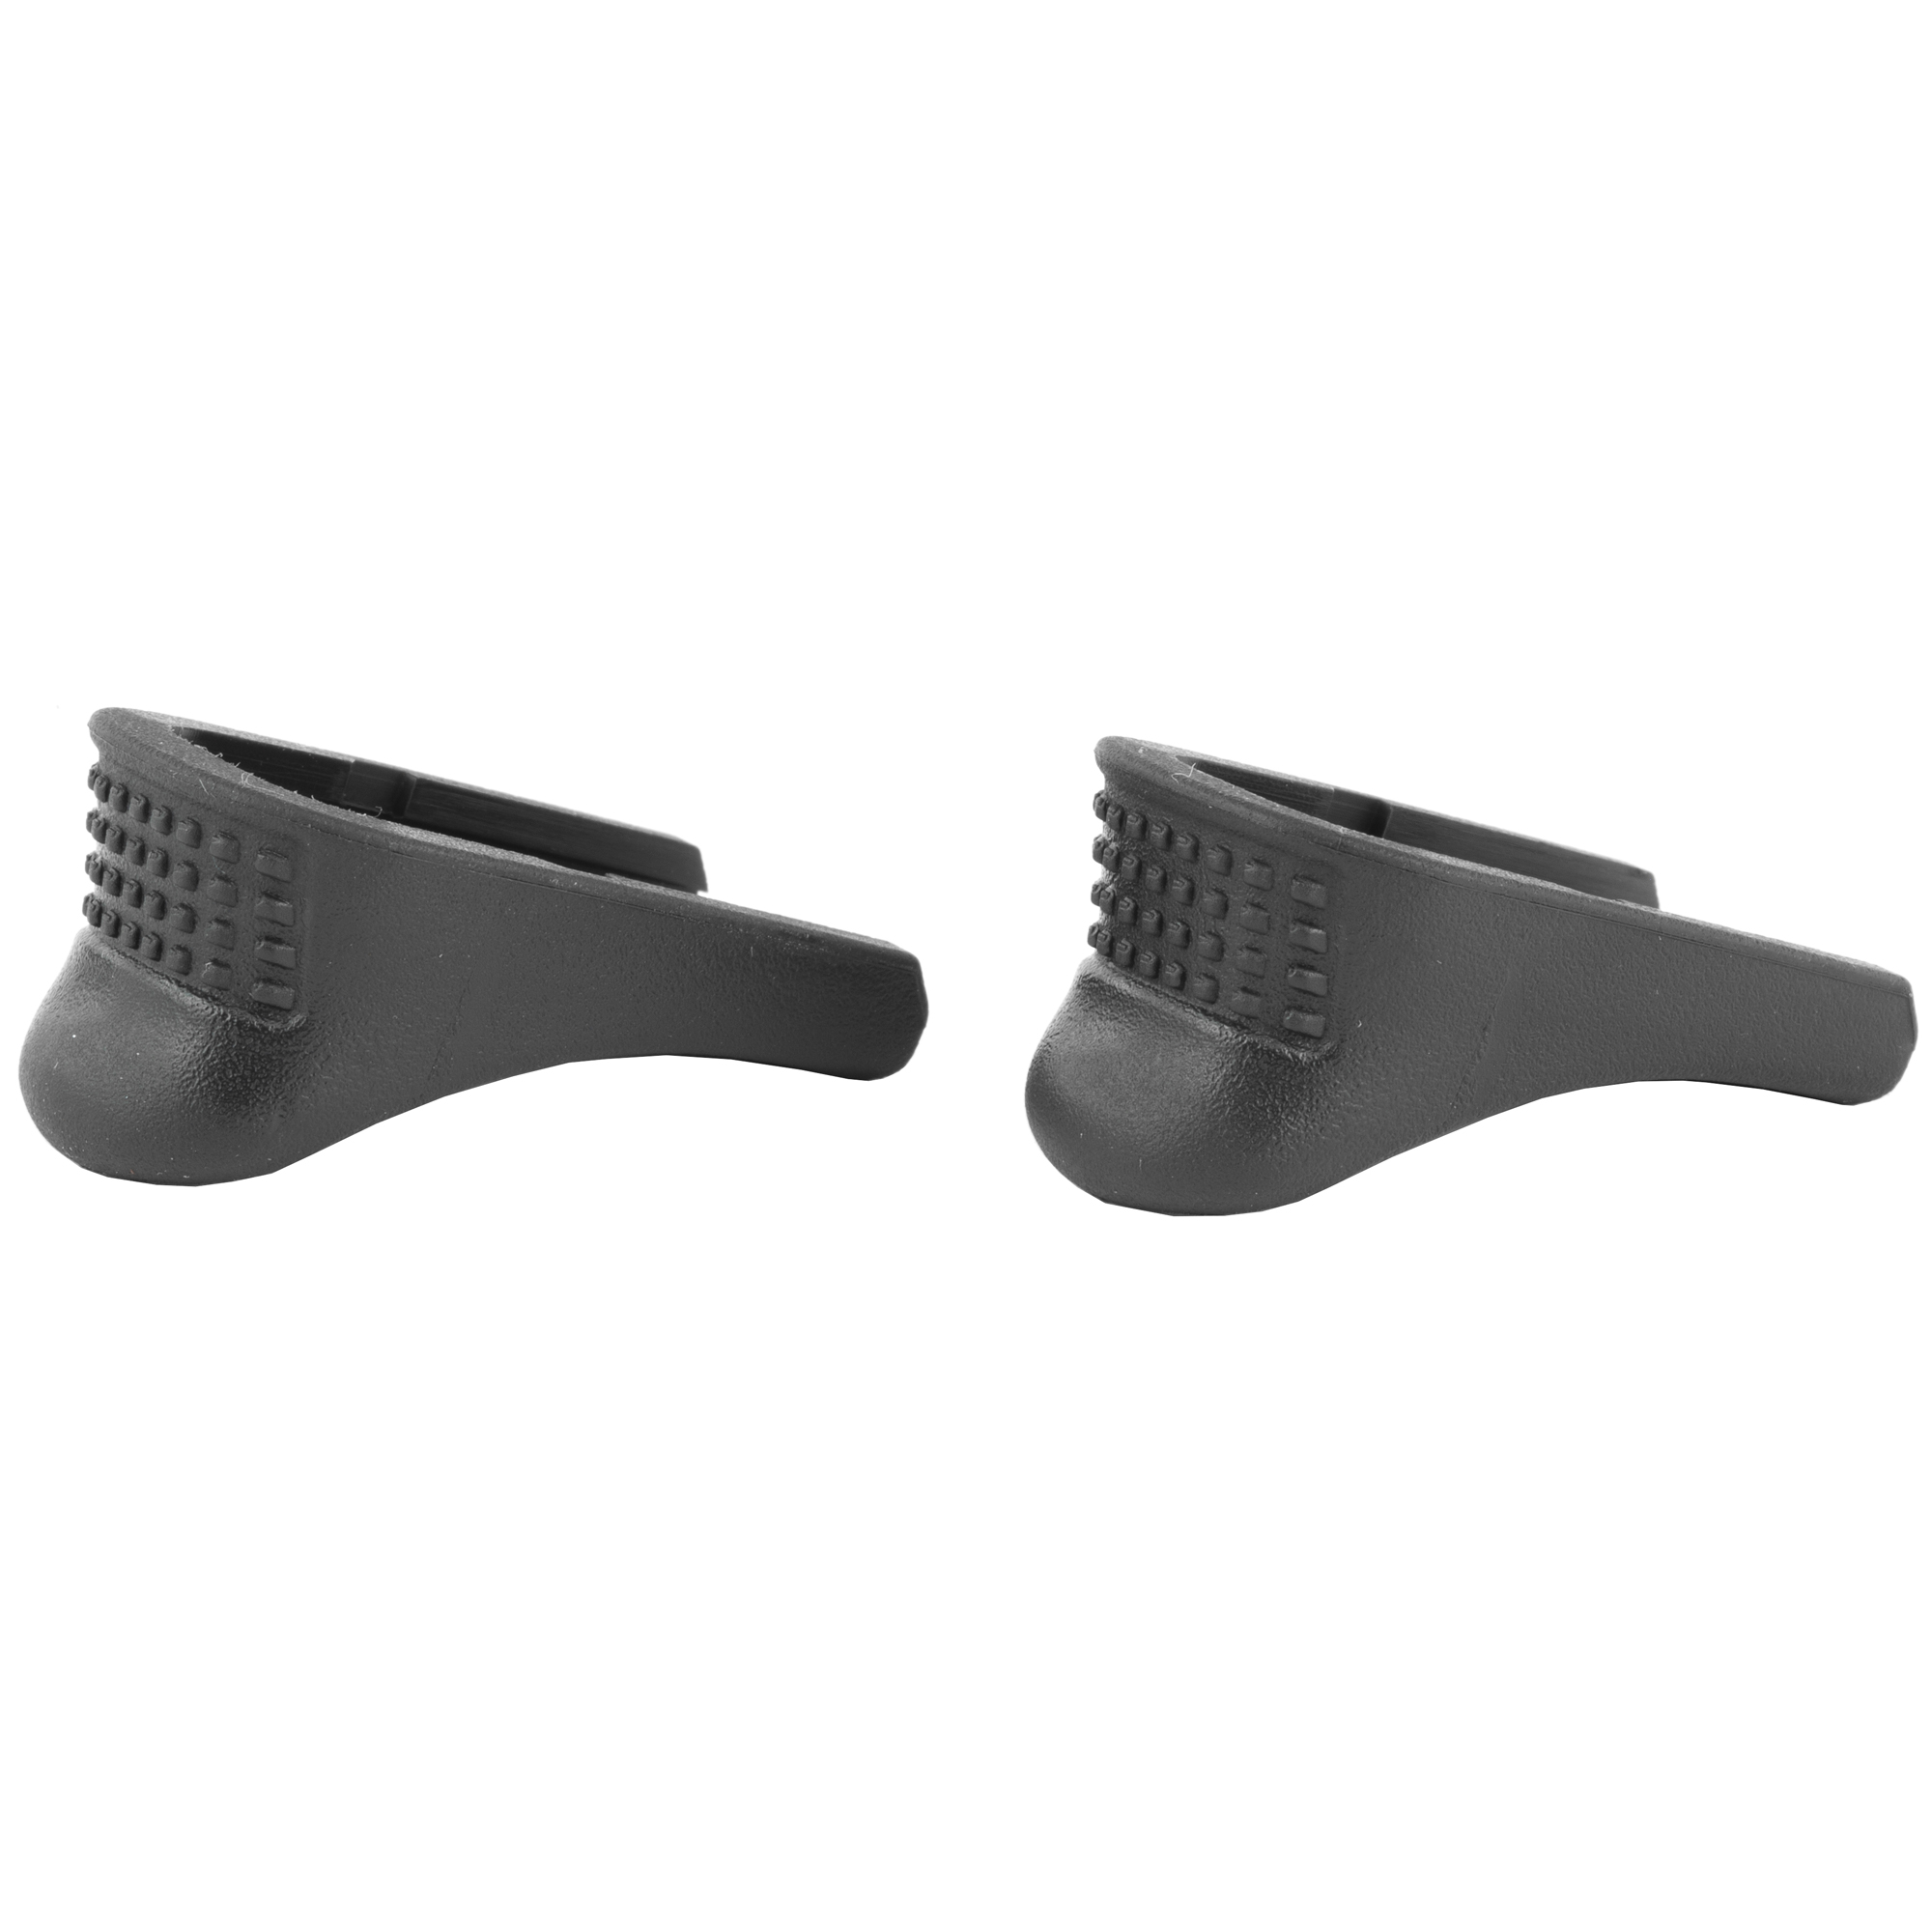 """Pachmayr's new Grip Extenders will greatly increase your control and shooting comfort when added to popular compact and sub-compact handguns. The extensions perfectly match the shape and texture of the handgun"""" so they look like they are part of the pistol"""" rather than an add-on. Extenders are easy to install and are made of tough"""" high strength polymer that stands up to the roughest handling. In addition"""" the Extenders come in a pack of two for a price similar to others on the market that only contain one."""